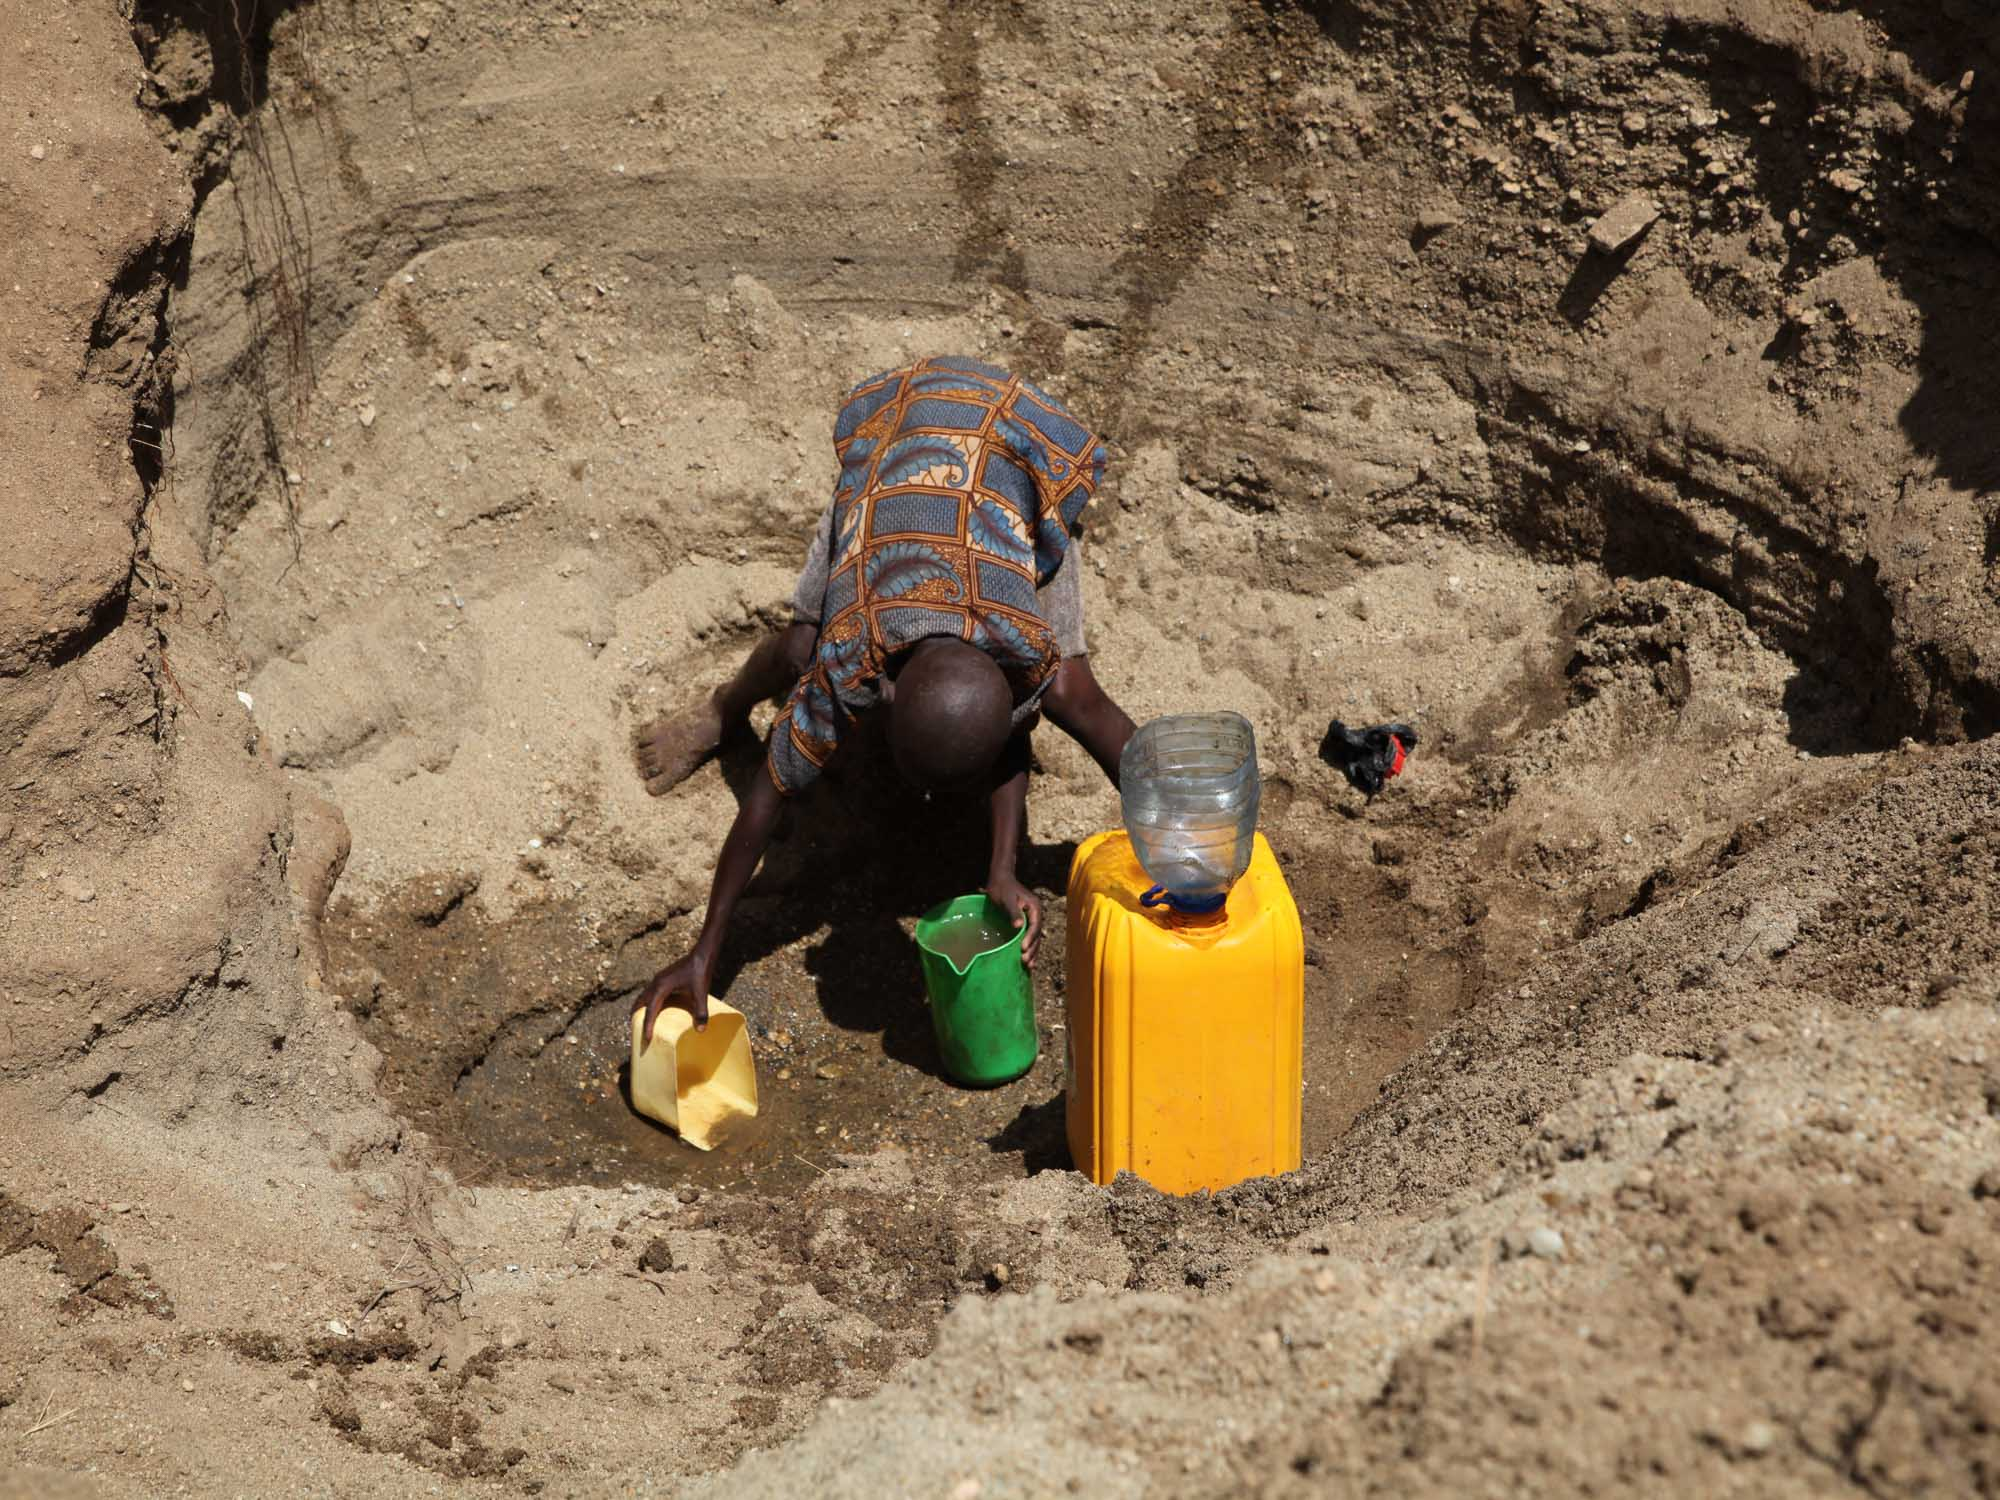 digging-for-water-min.jpg